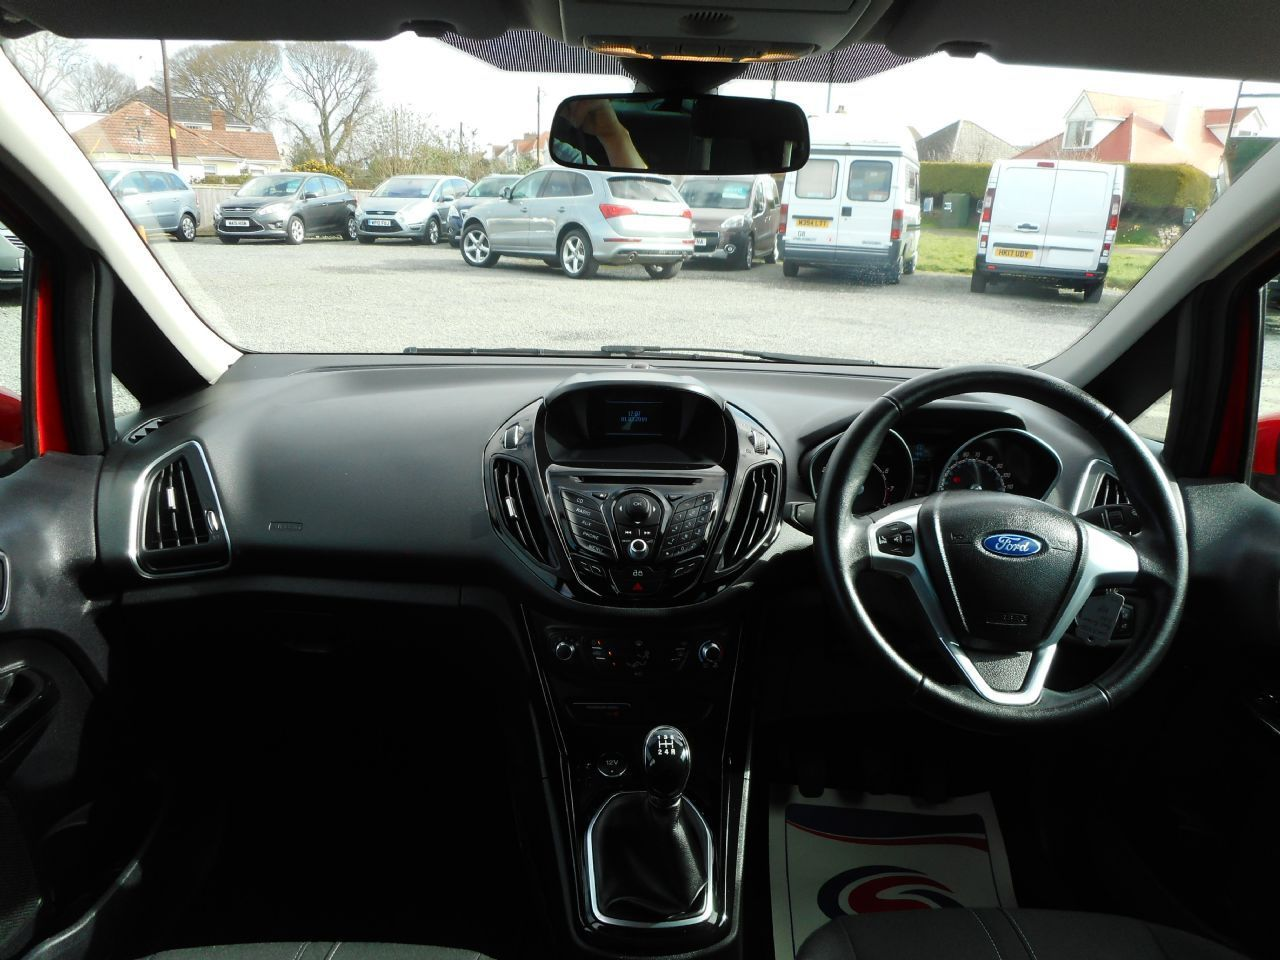 FORD B-MAX 1.4 90PS Zetec (2013) - Picture 11